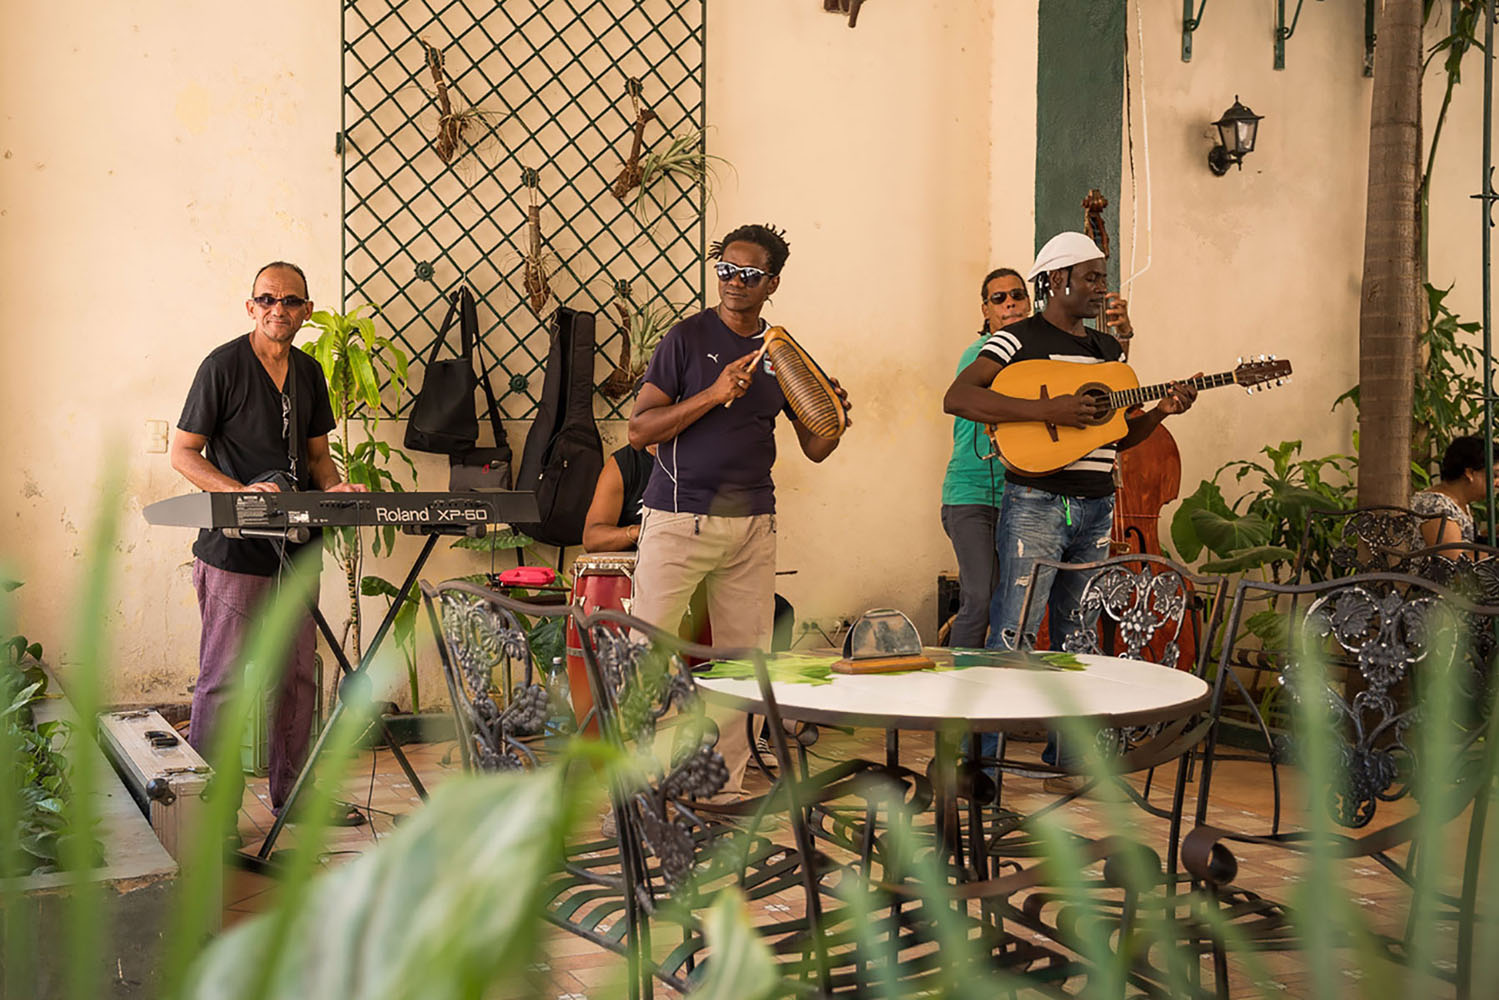 A group of men playing Cuban rumba